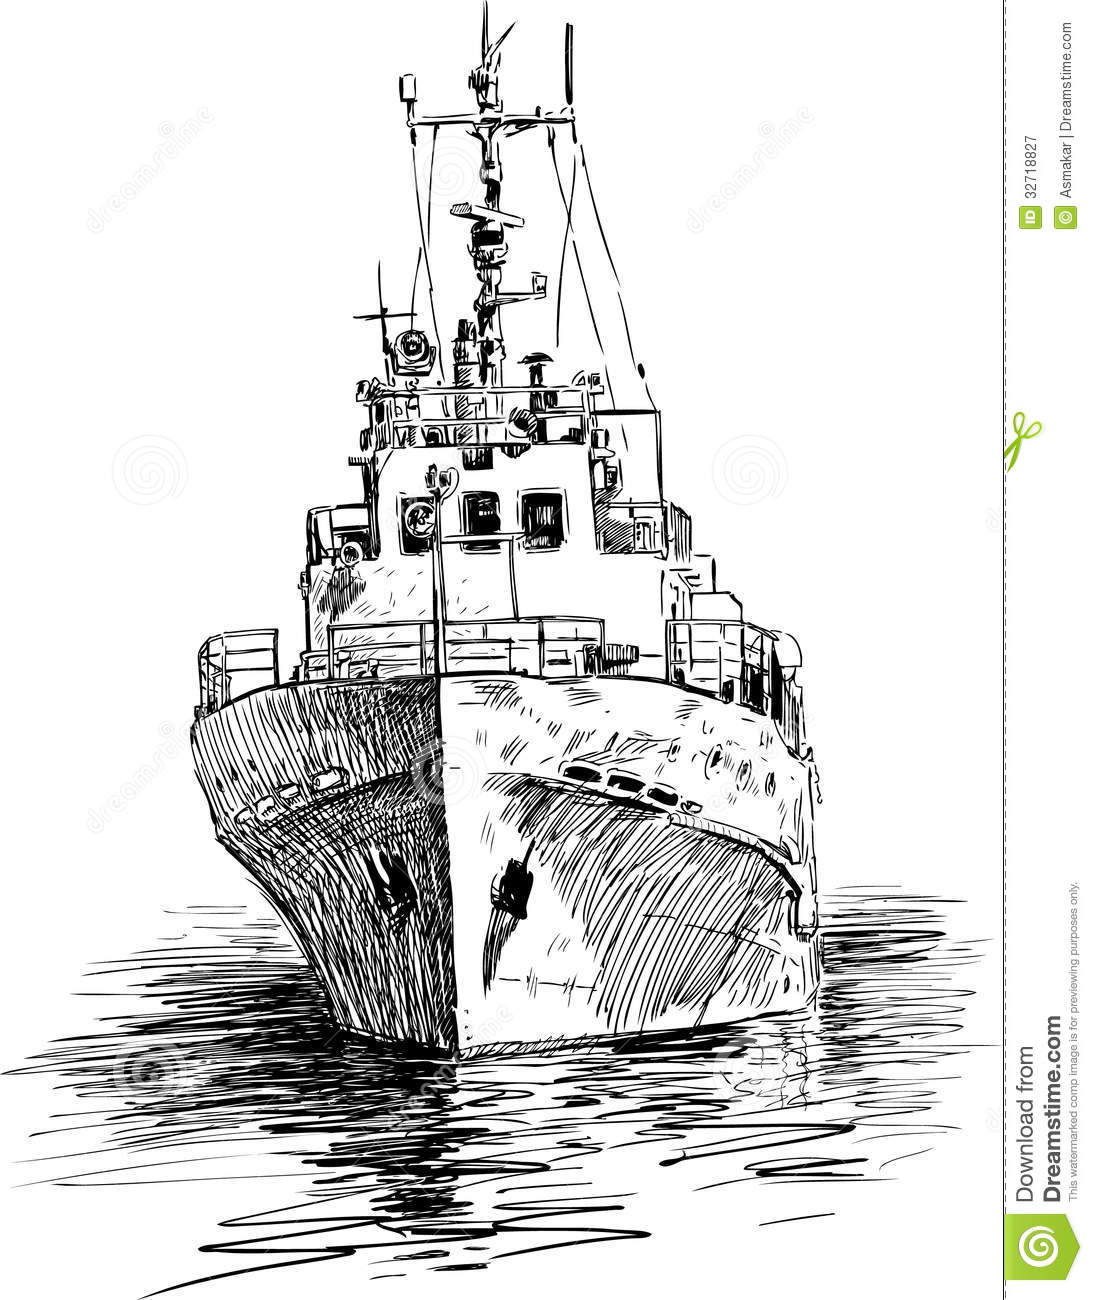 651051689851968208 in addition 65057 Galeone Pirata 26 as well 2014 07 01 archive likewise Royalty Free Stock Photography Ship Berth Vector Drawing Industrial Image32718827 further Draw Your Squad Meme. on black pearl ship drawing